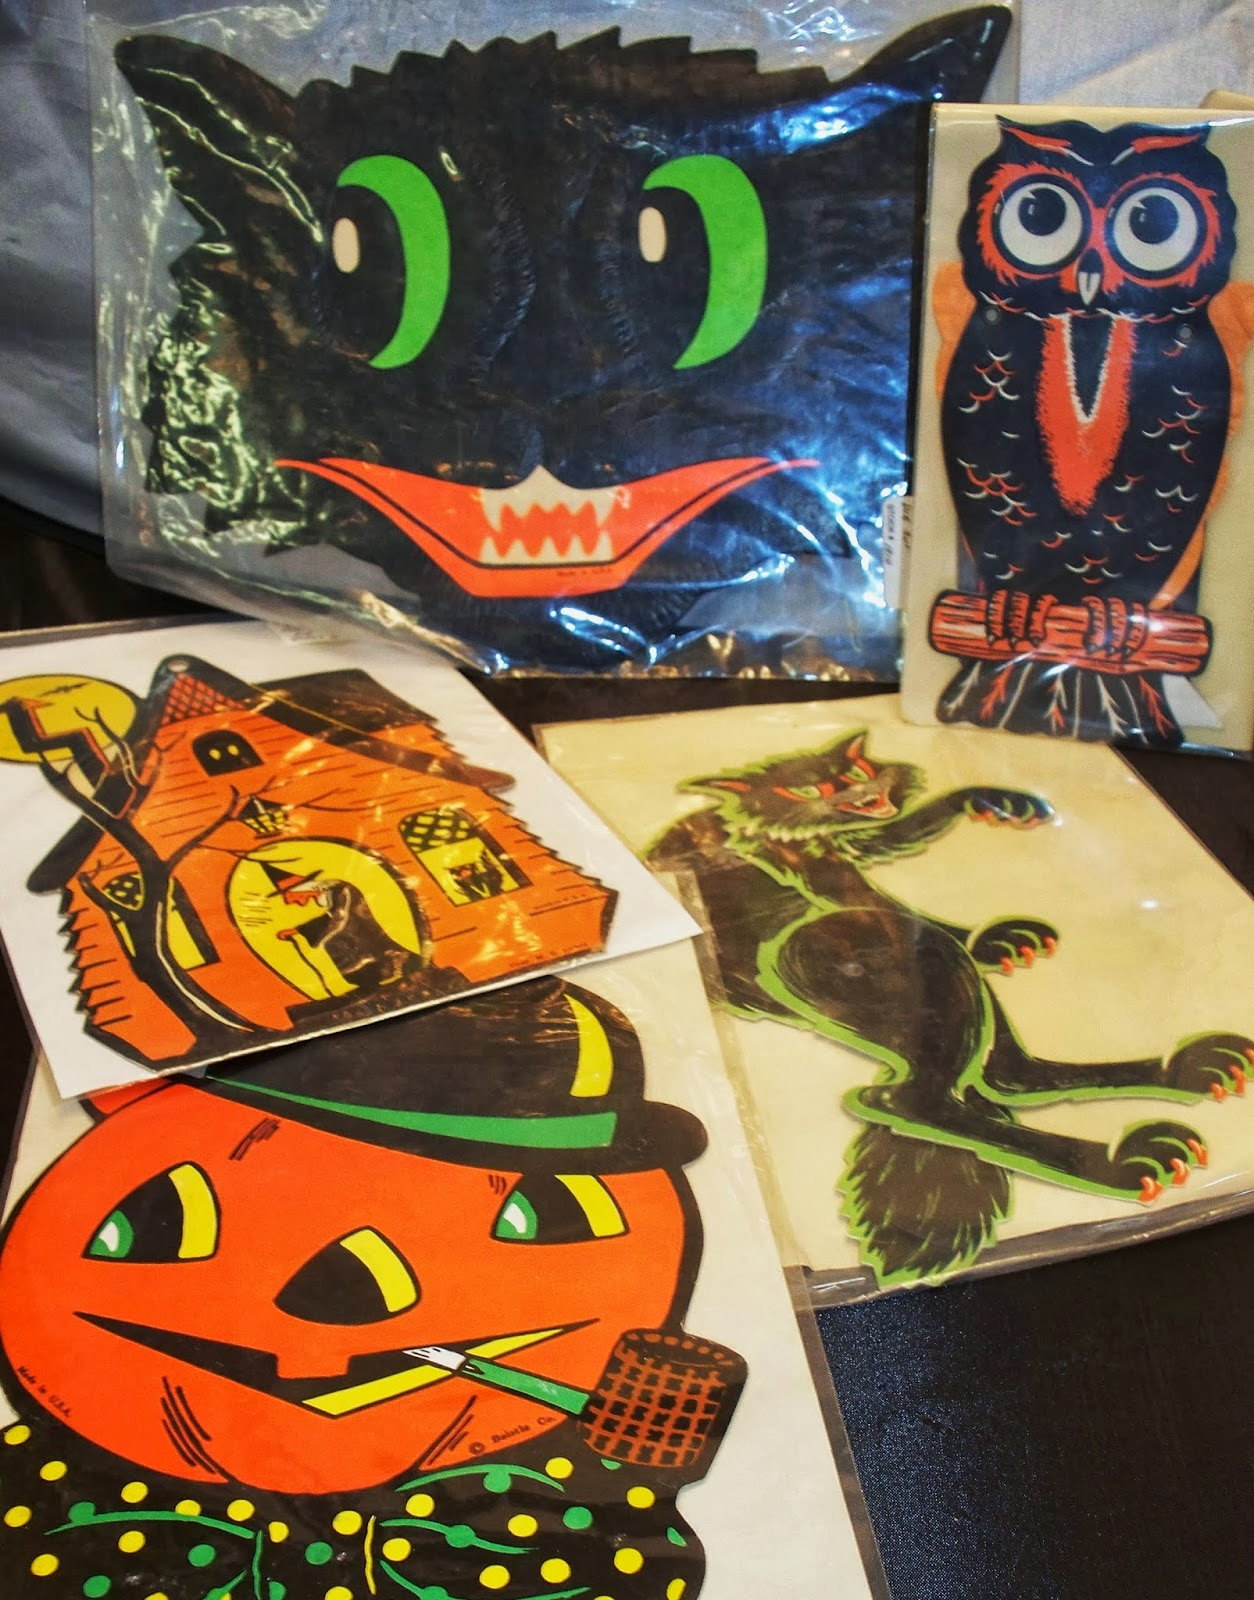 Vintage halloween paper decorations - Other Vintage Halloween Paper Items Include All Types Of Party Goods Such As Paper Plates Cups Napkins Tablecloths Nut Cups And Table Decorations